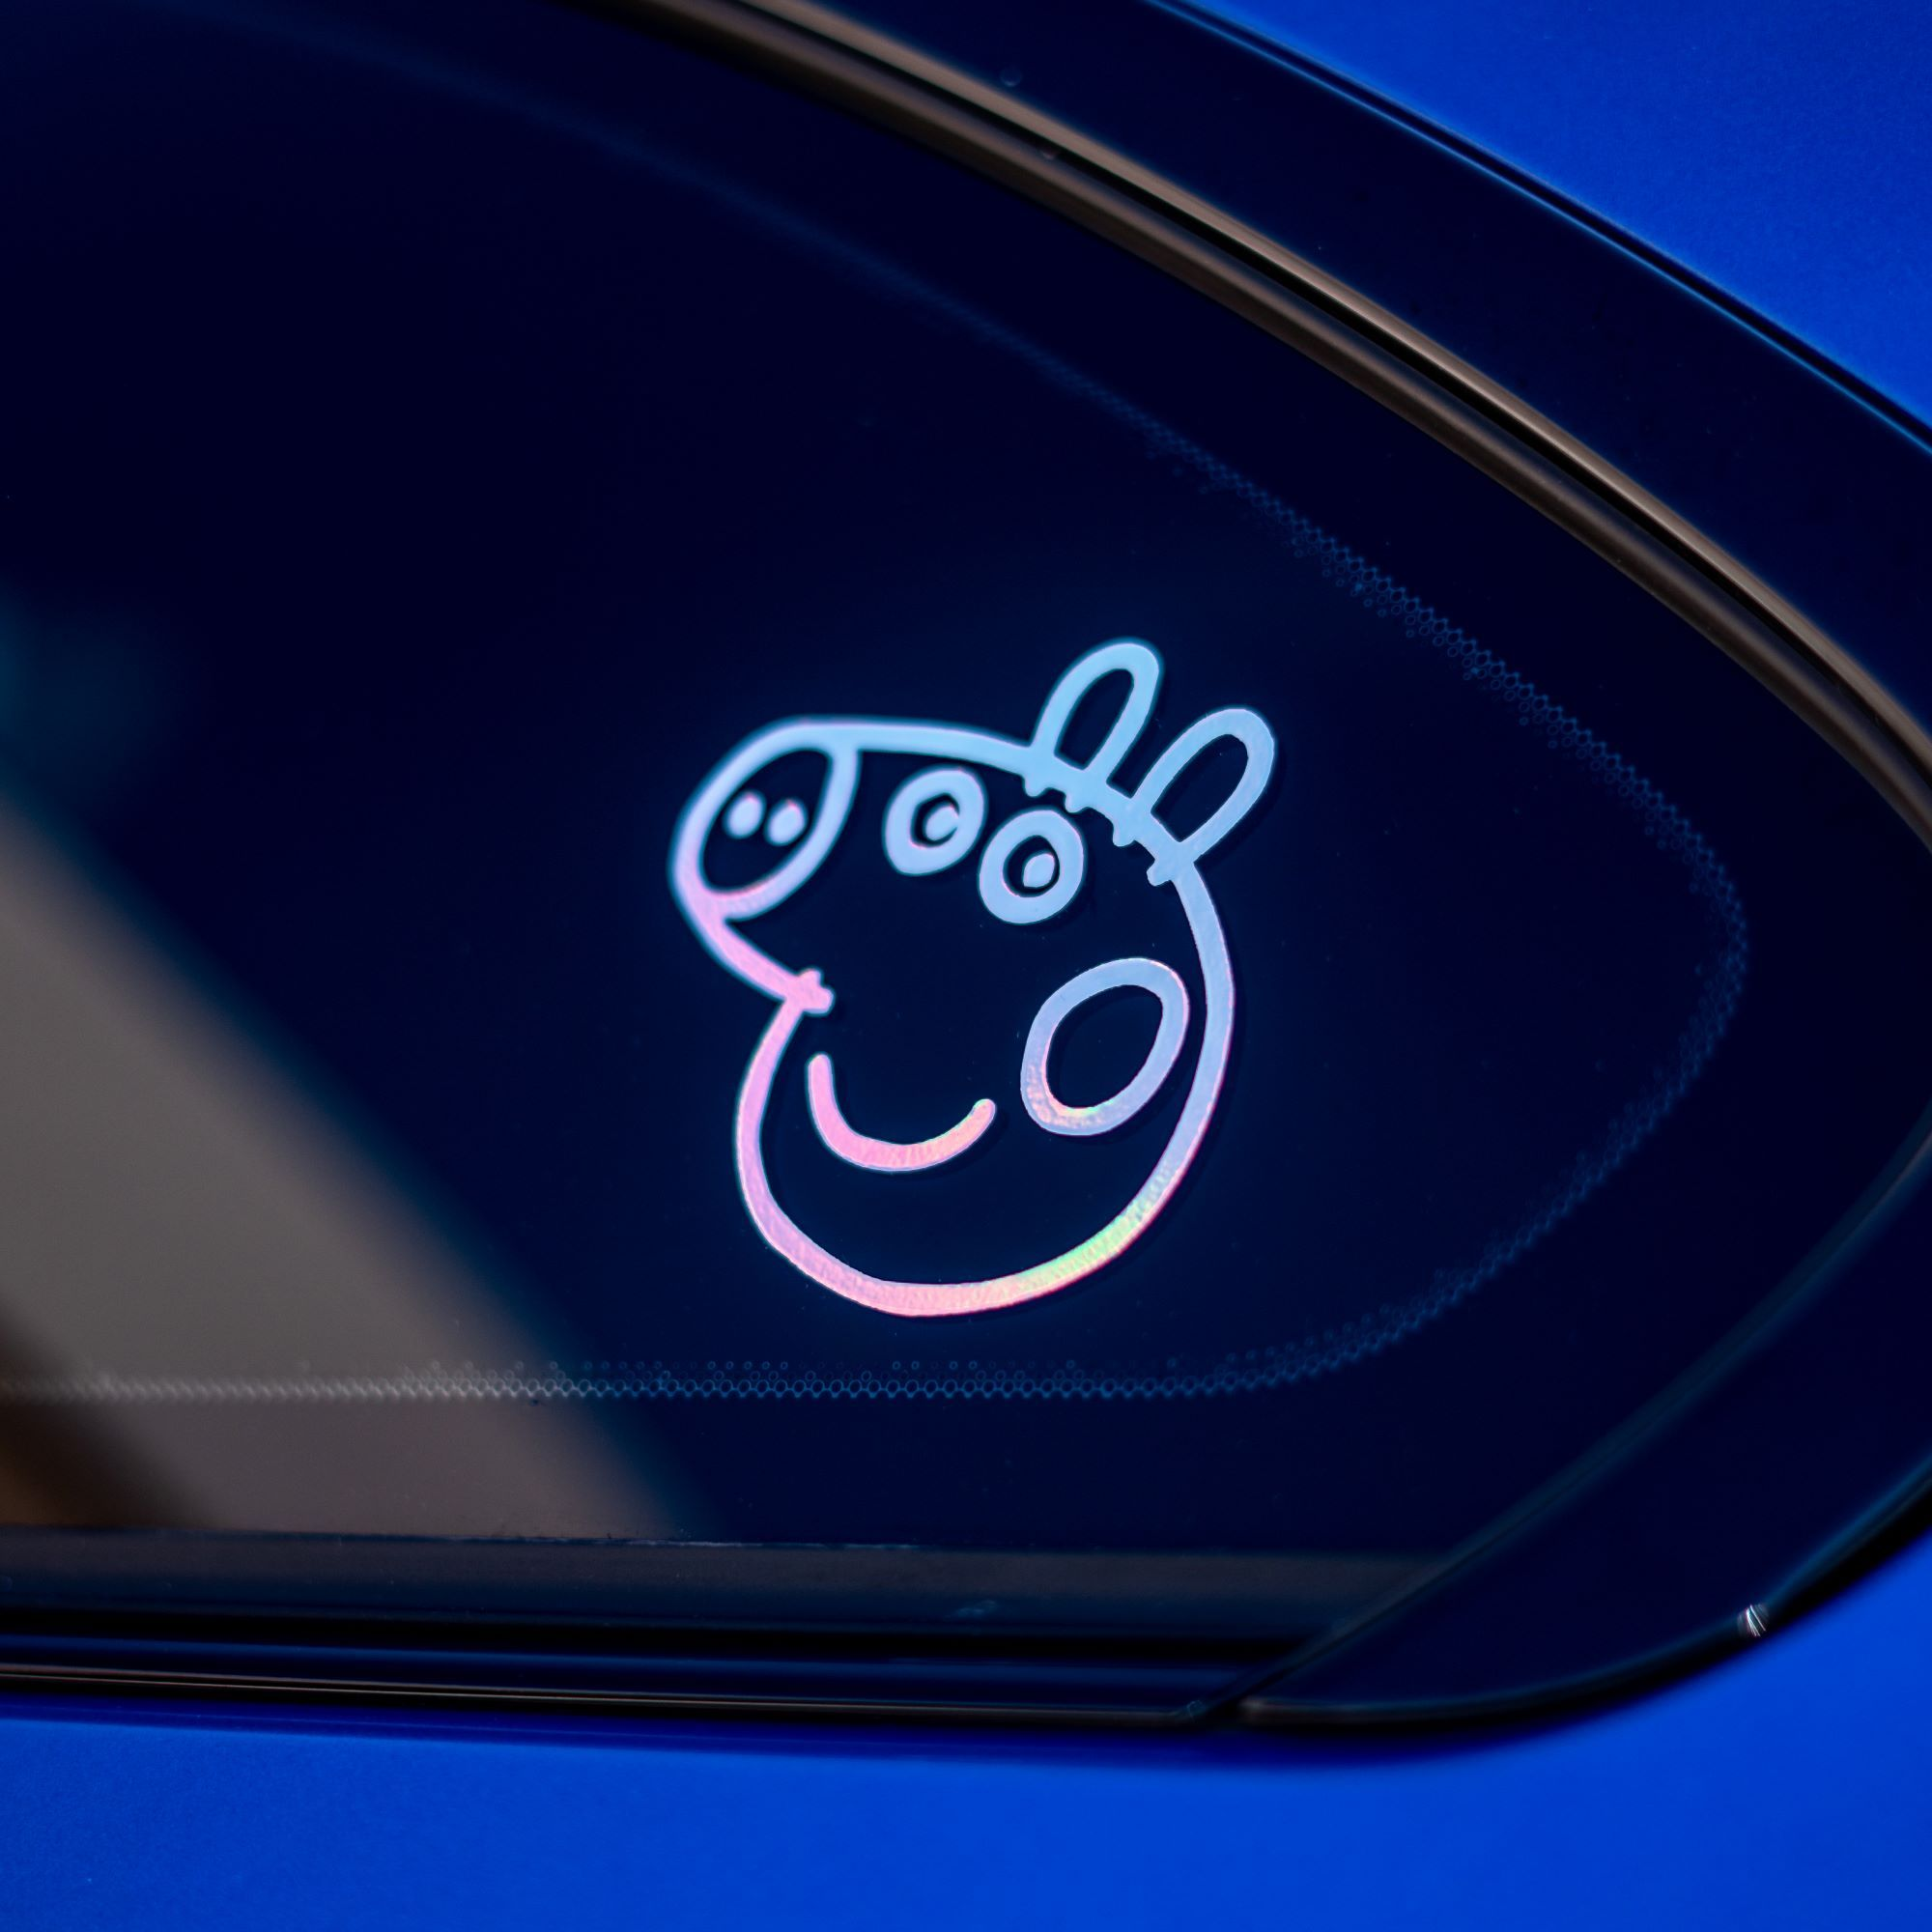 Peppa The Pig Decal